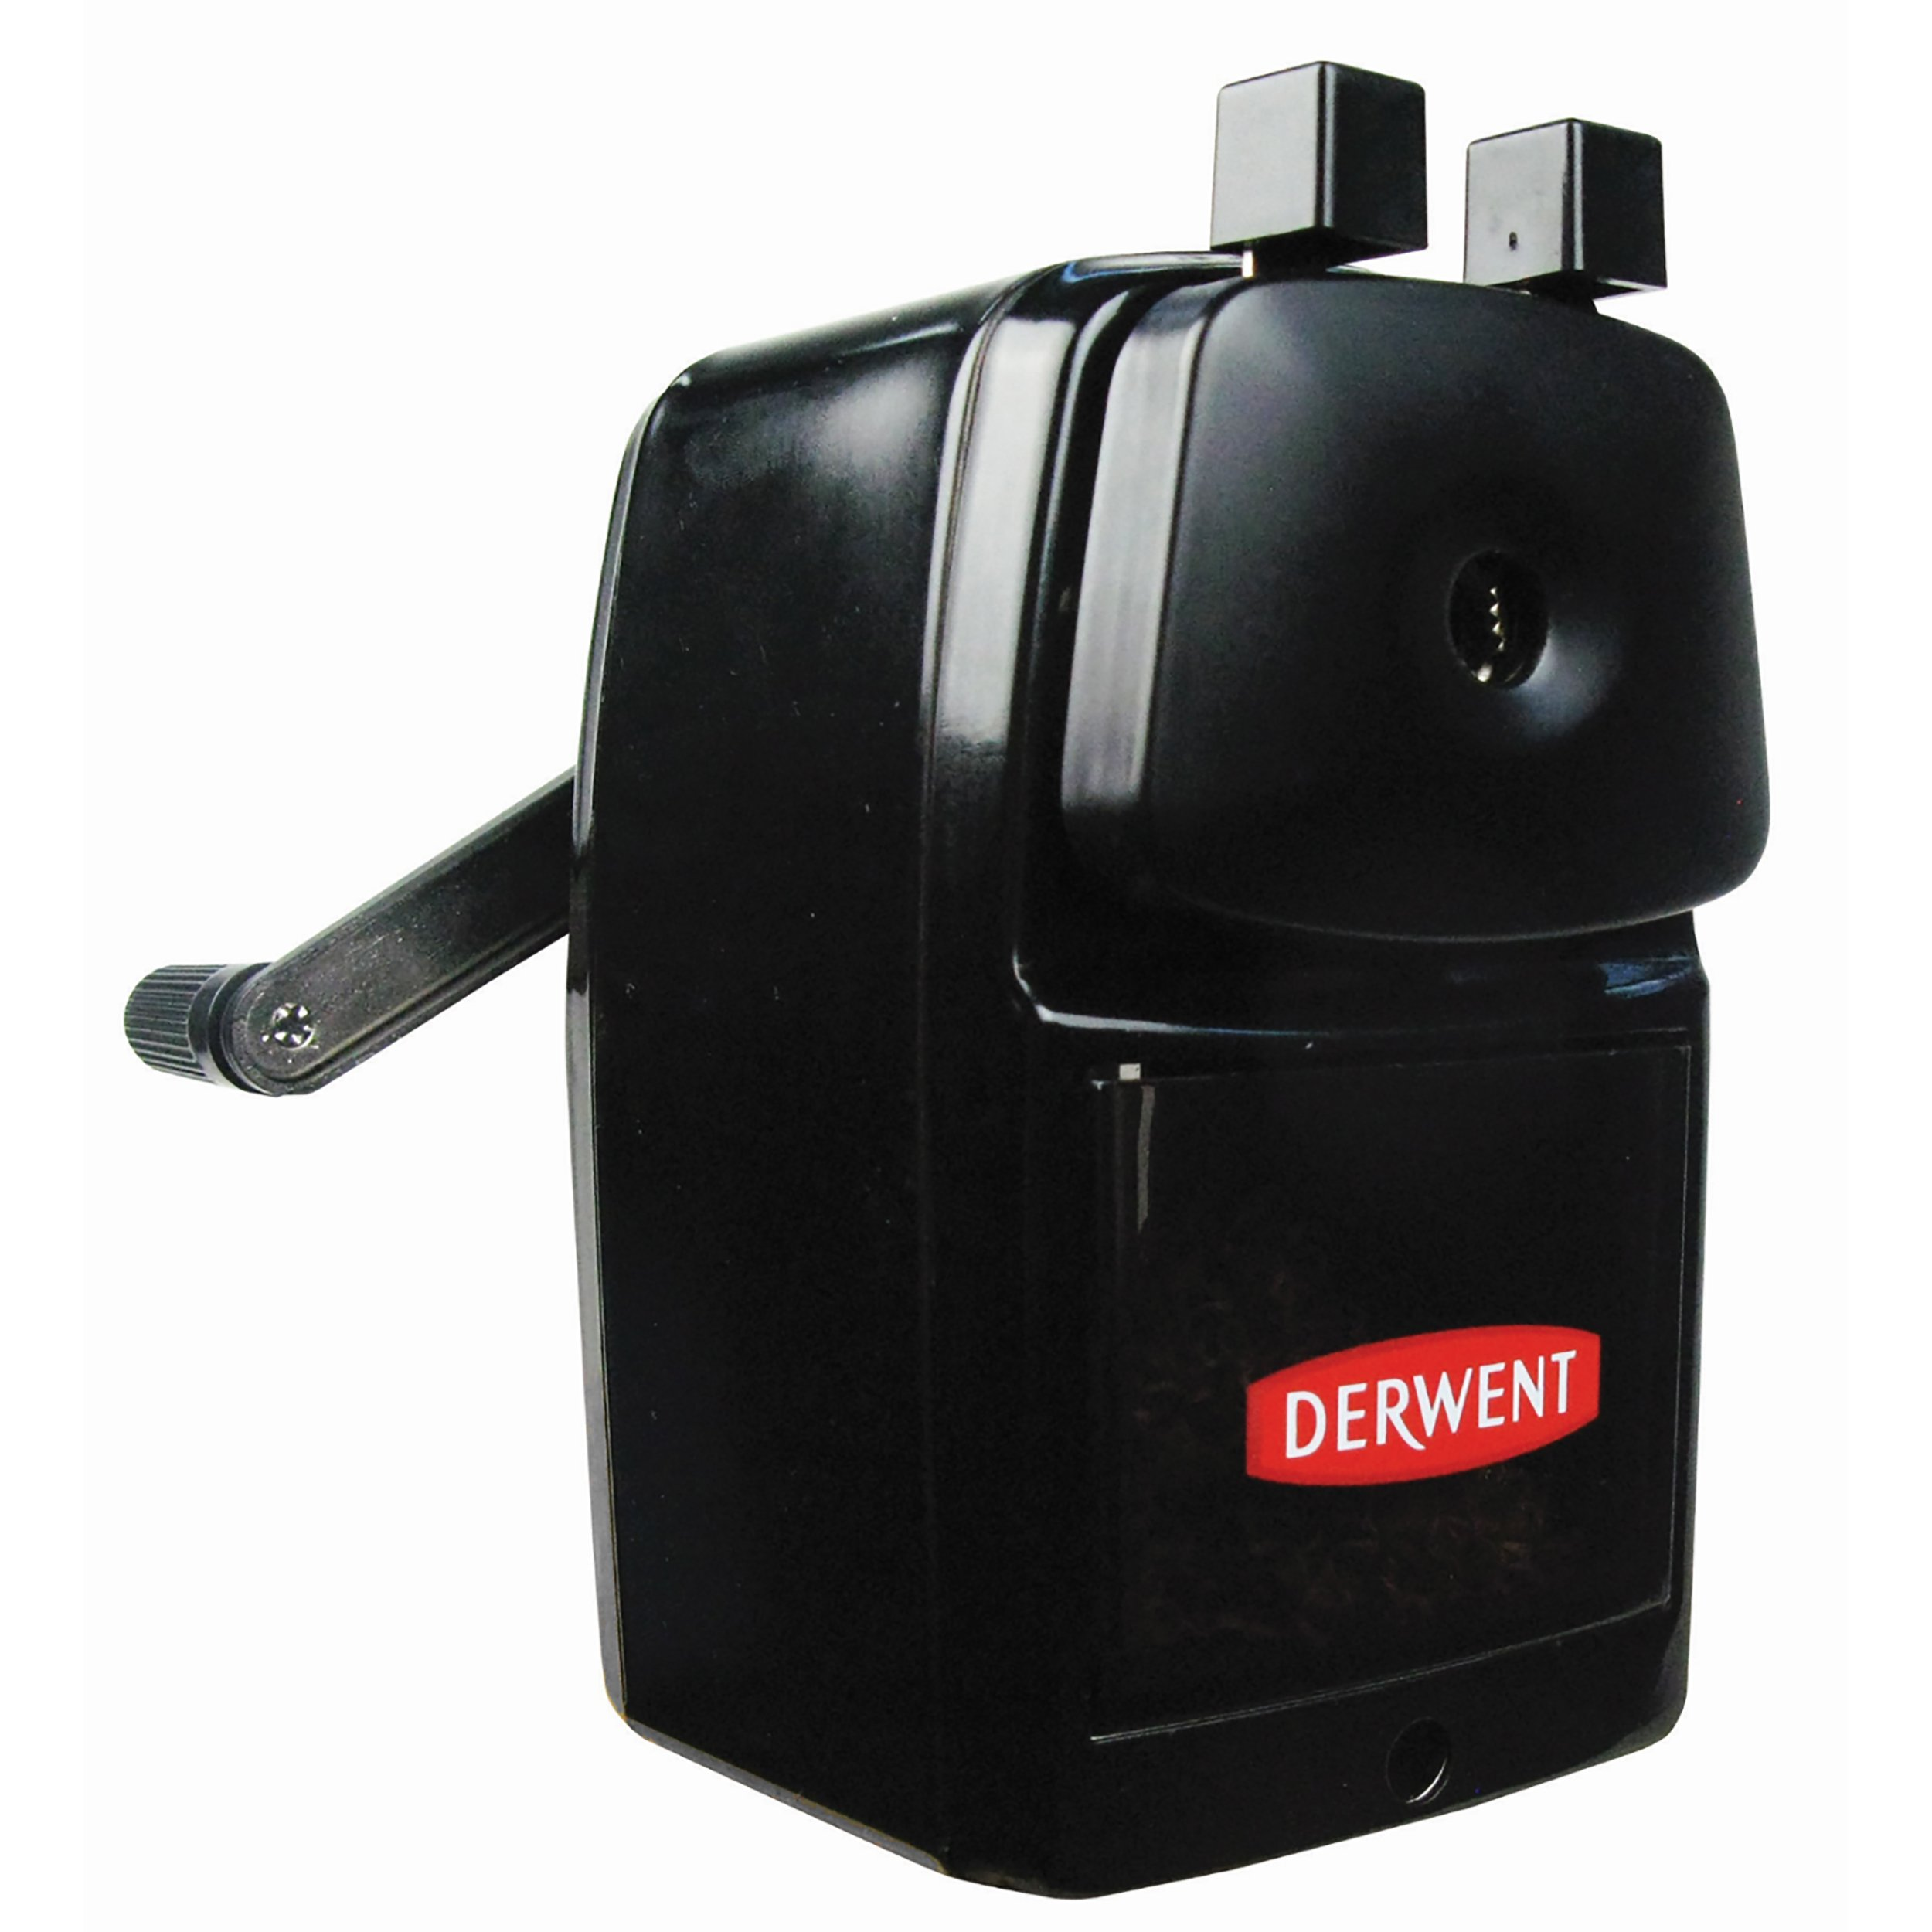 Derwent Super Point Manual Helical Pencil Sharpener (2302001)